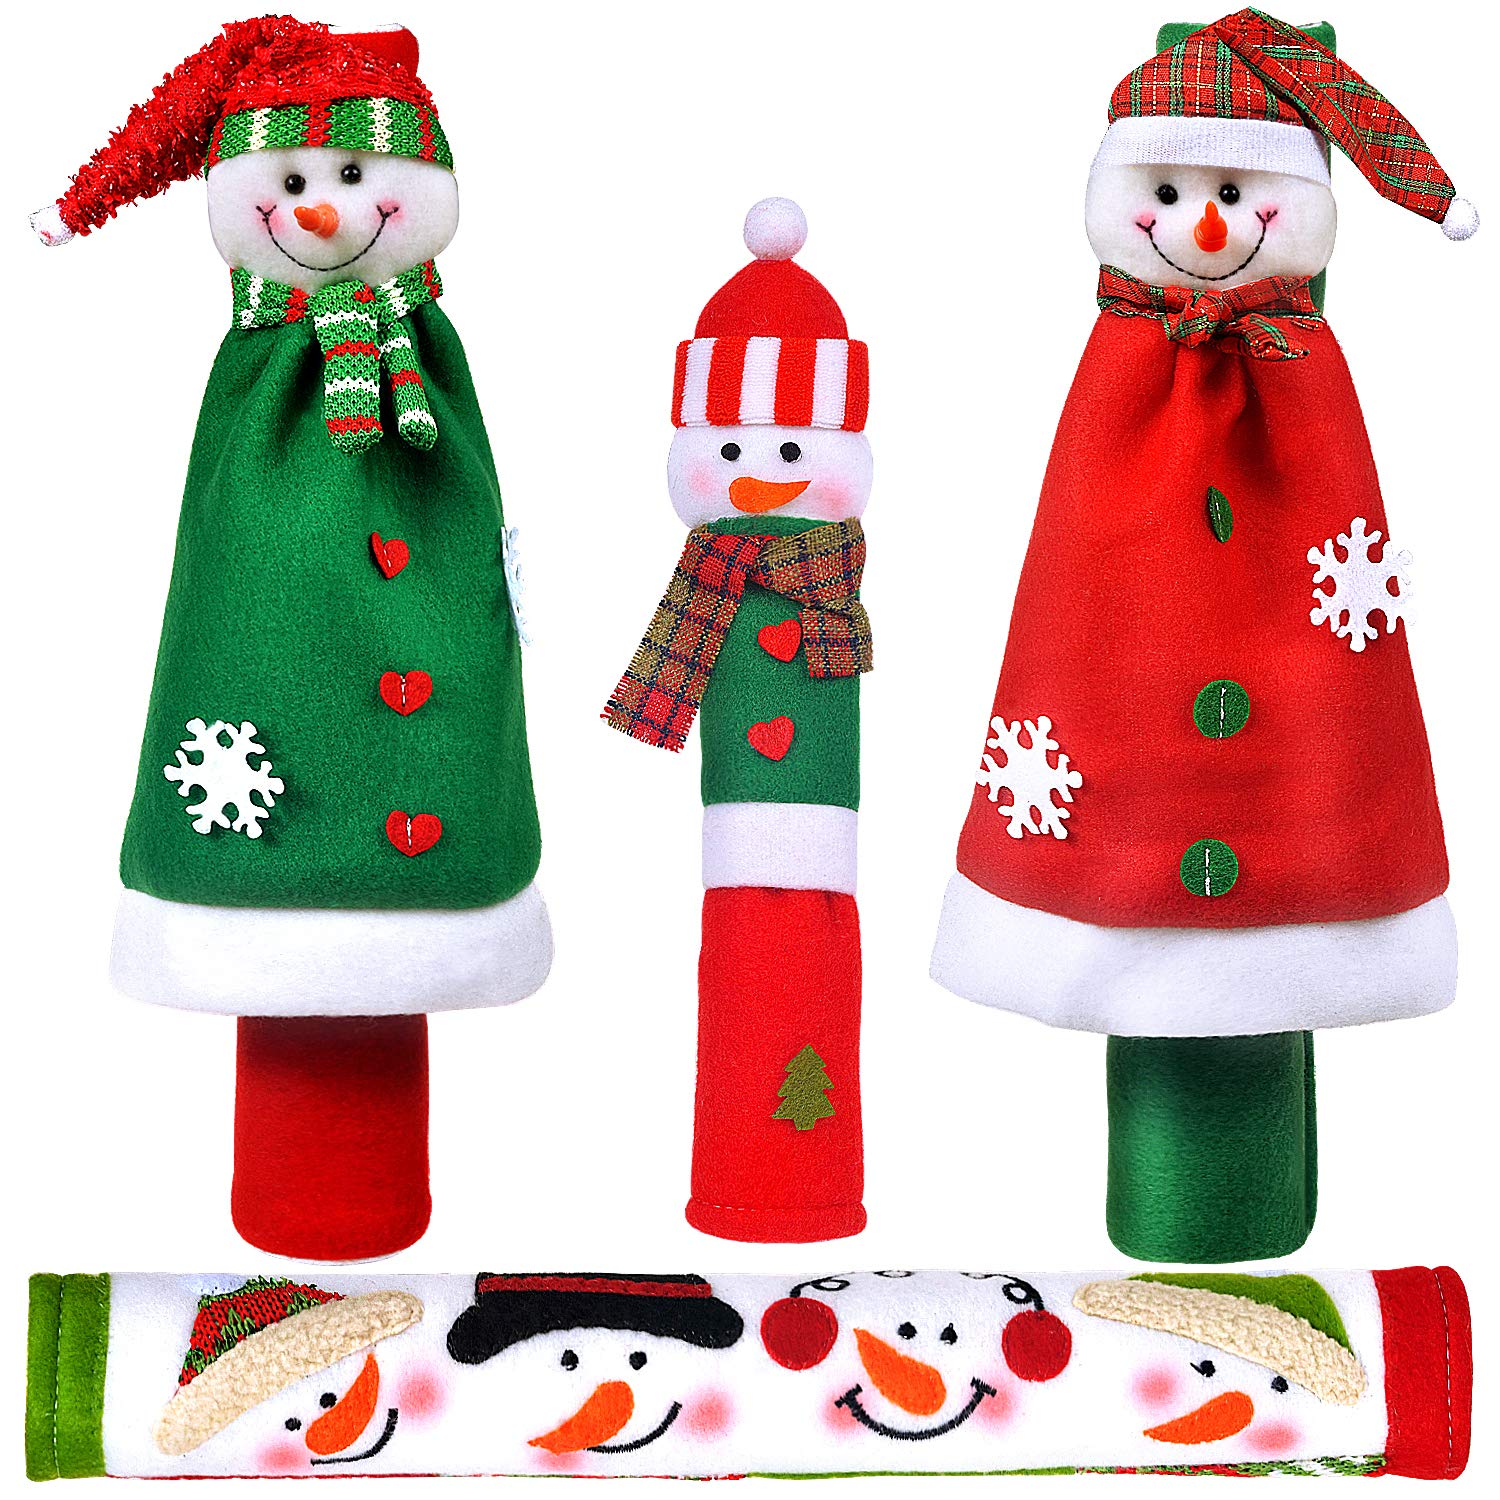 OUGAR8 Adorable Snowman Refrigerator Handle Covers Set | Cute &Practical Fridge Door Covers| Protective Kitchen Appliance Covers |Perfect Christmas Decorations Idea (3-Cloak)